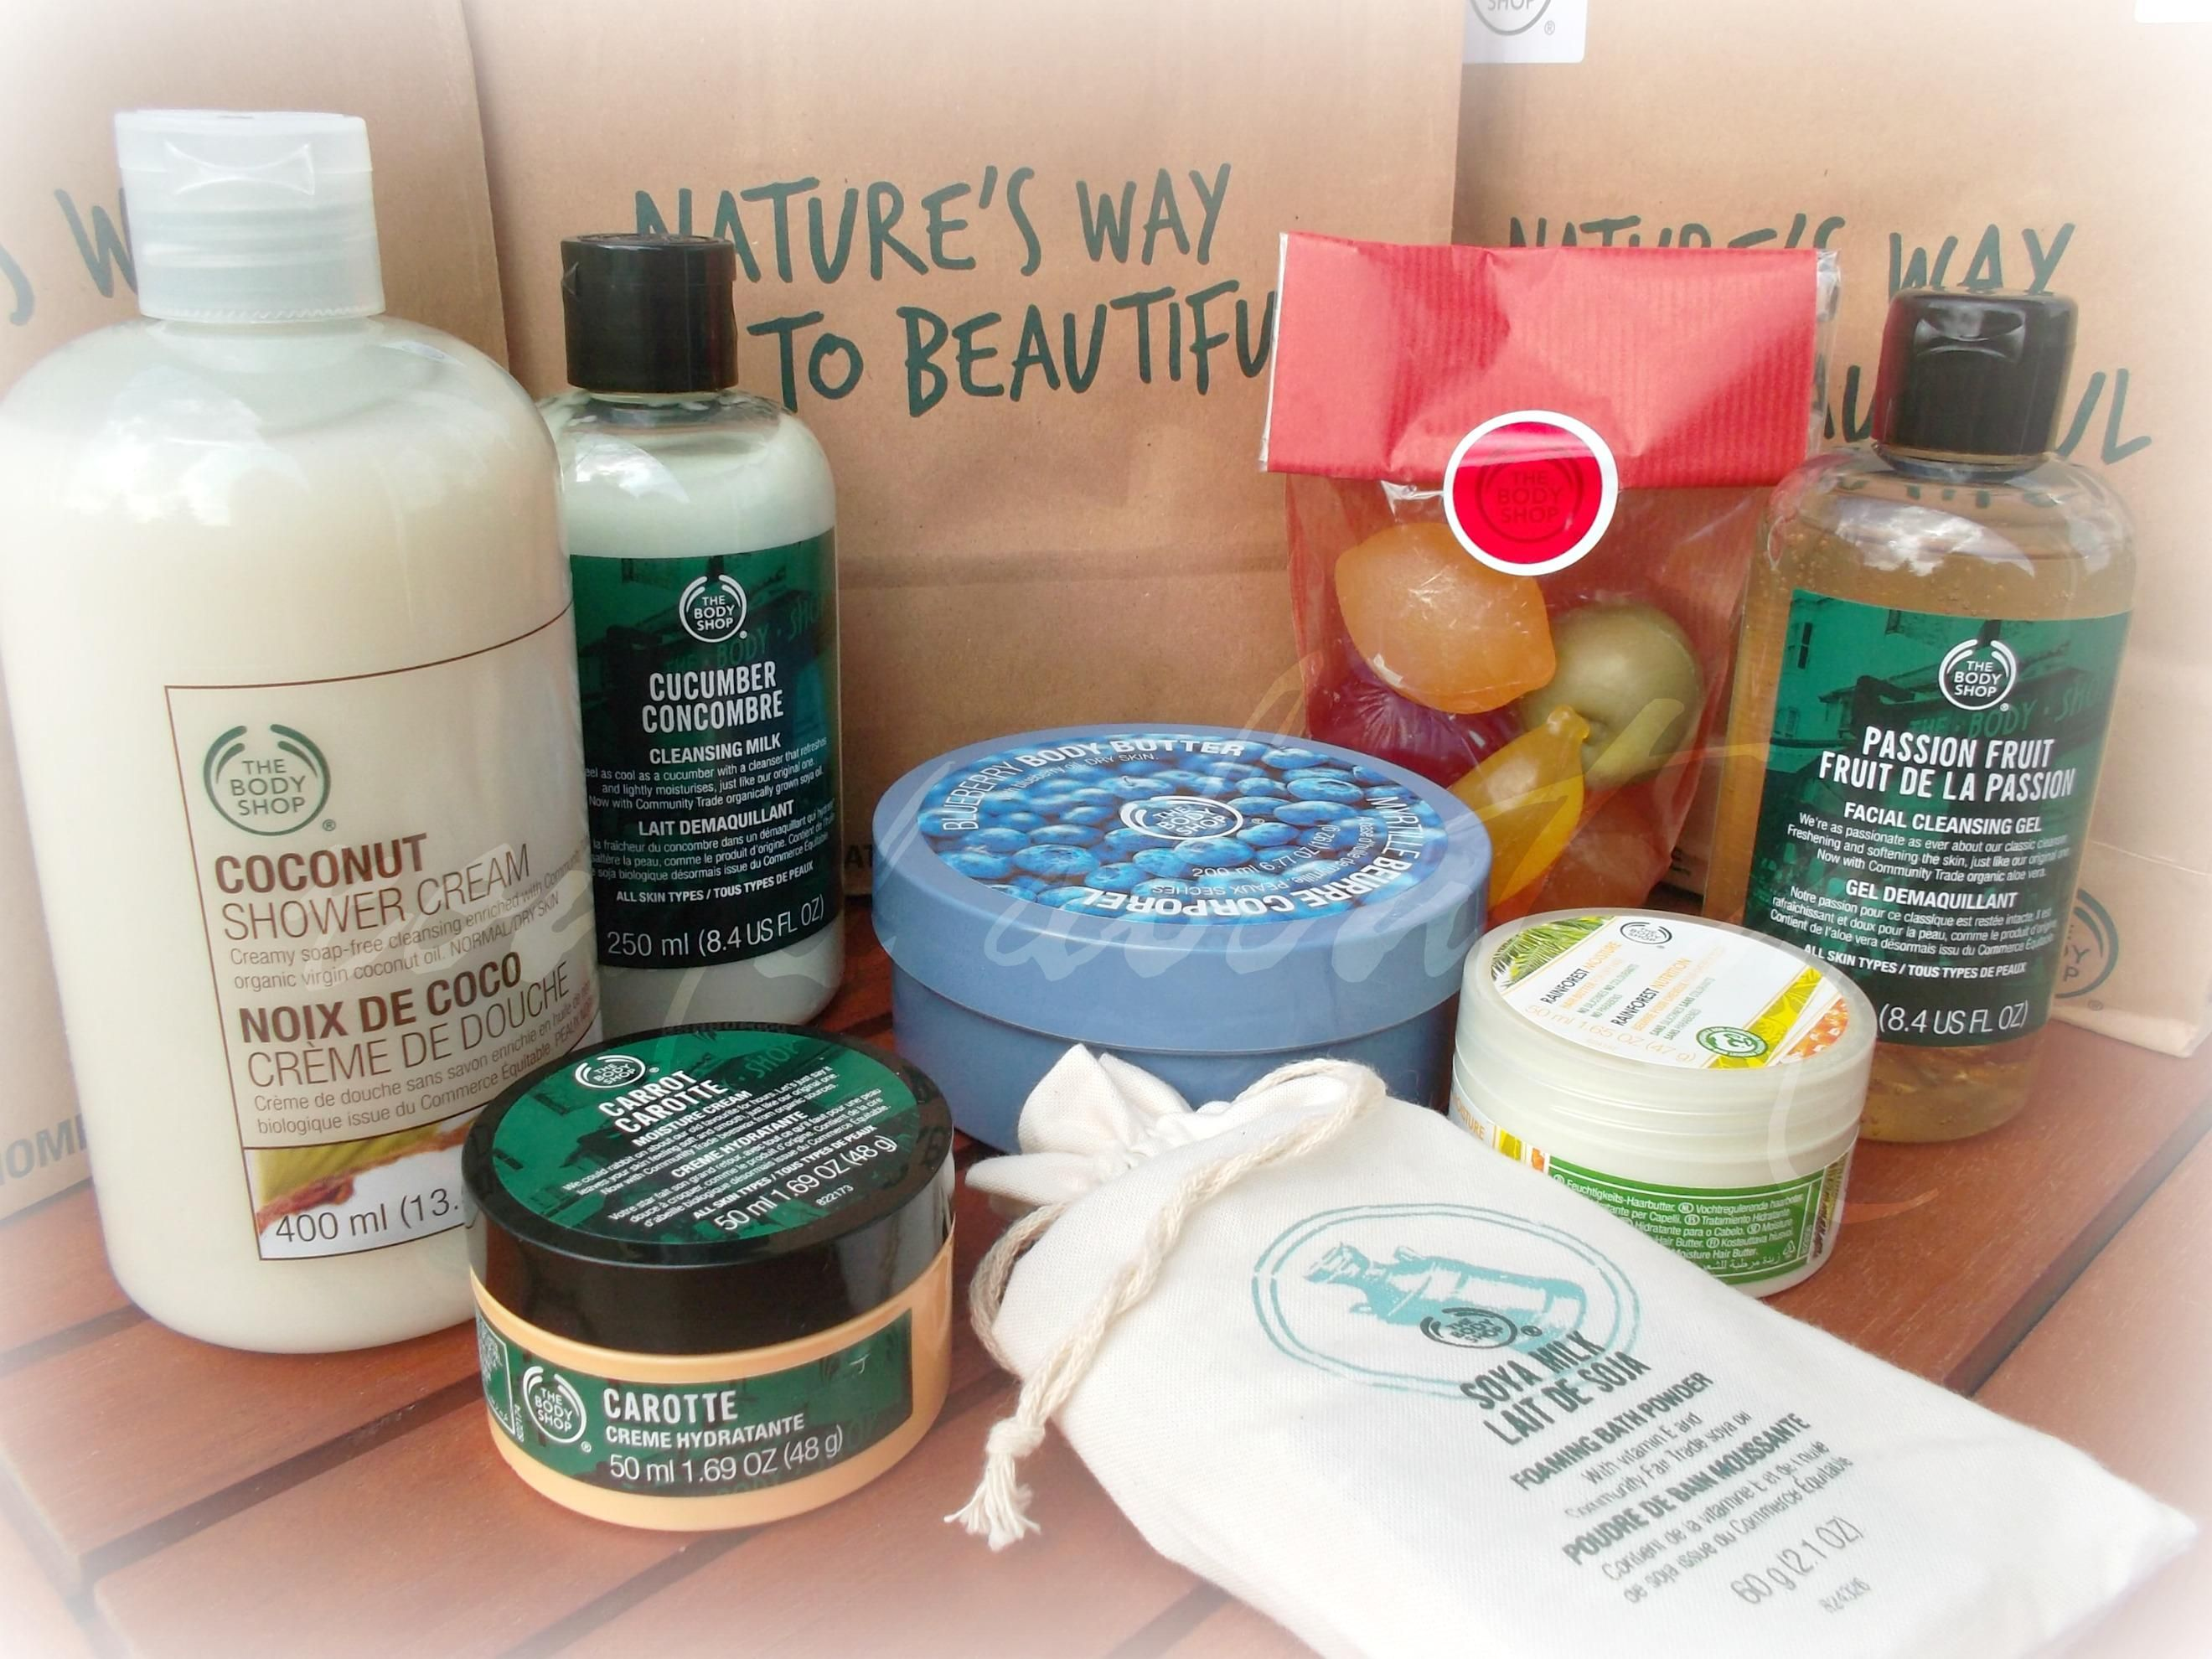 The Body Shop Haul   http://round-about-me-facts.blogspot.de/2012/06/es-gab-prozente-und-ich-schlage-zu.html